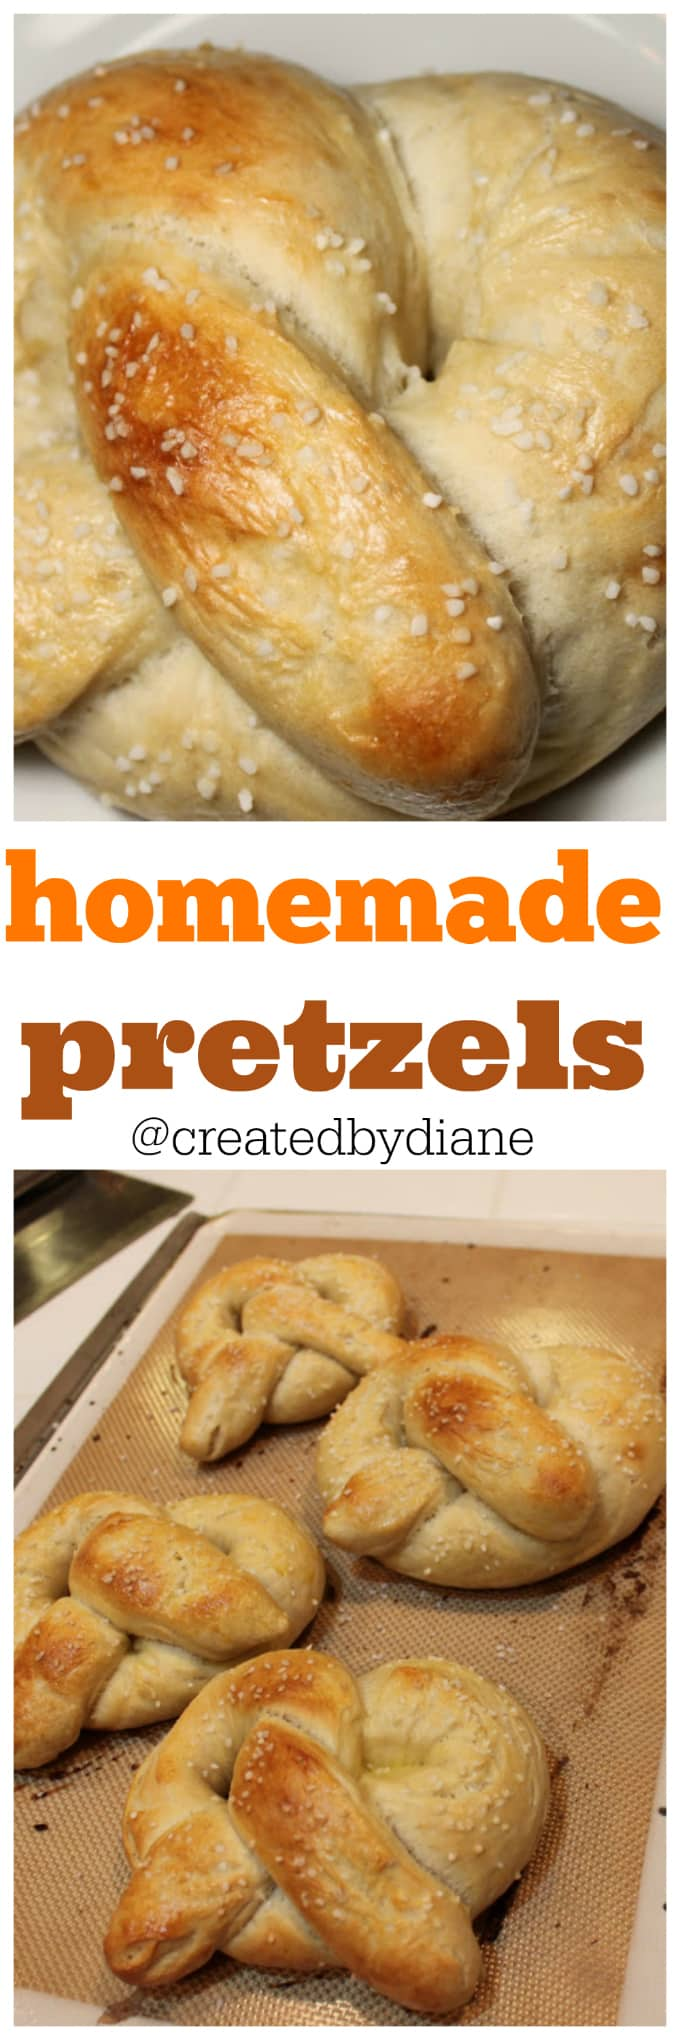 homemade pretzels from @createdbydiane